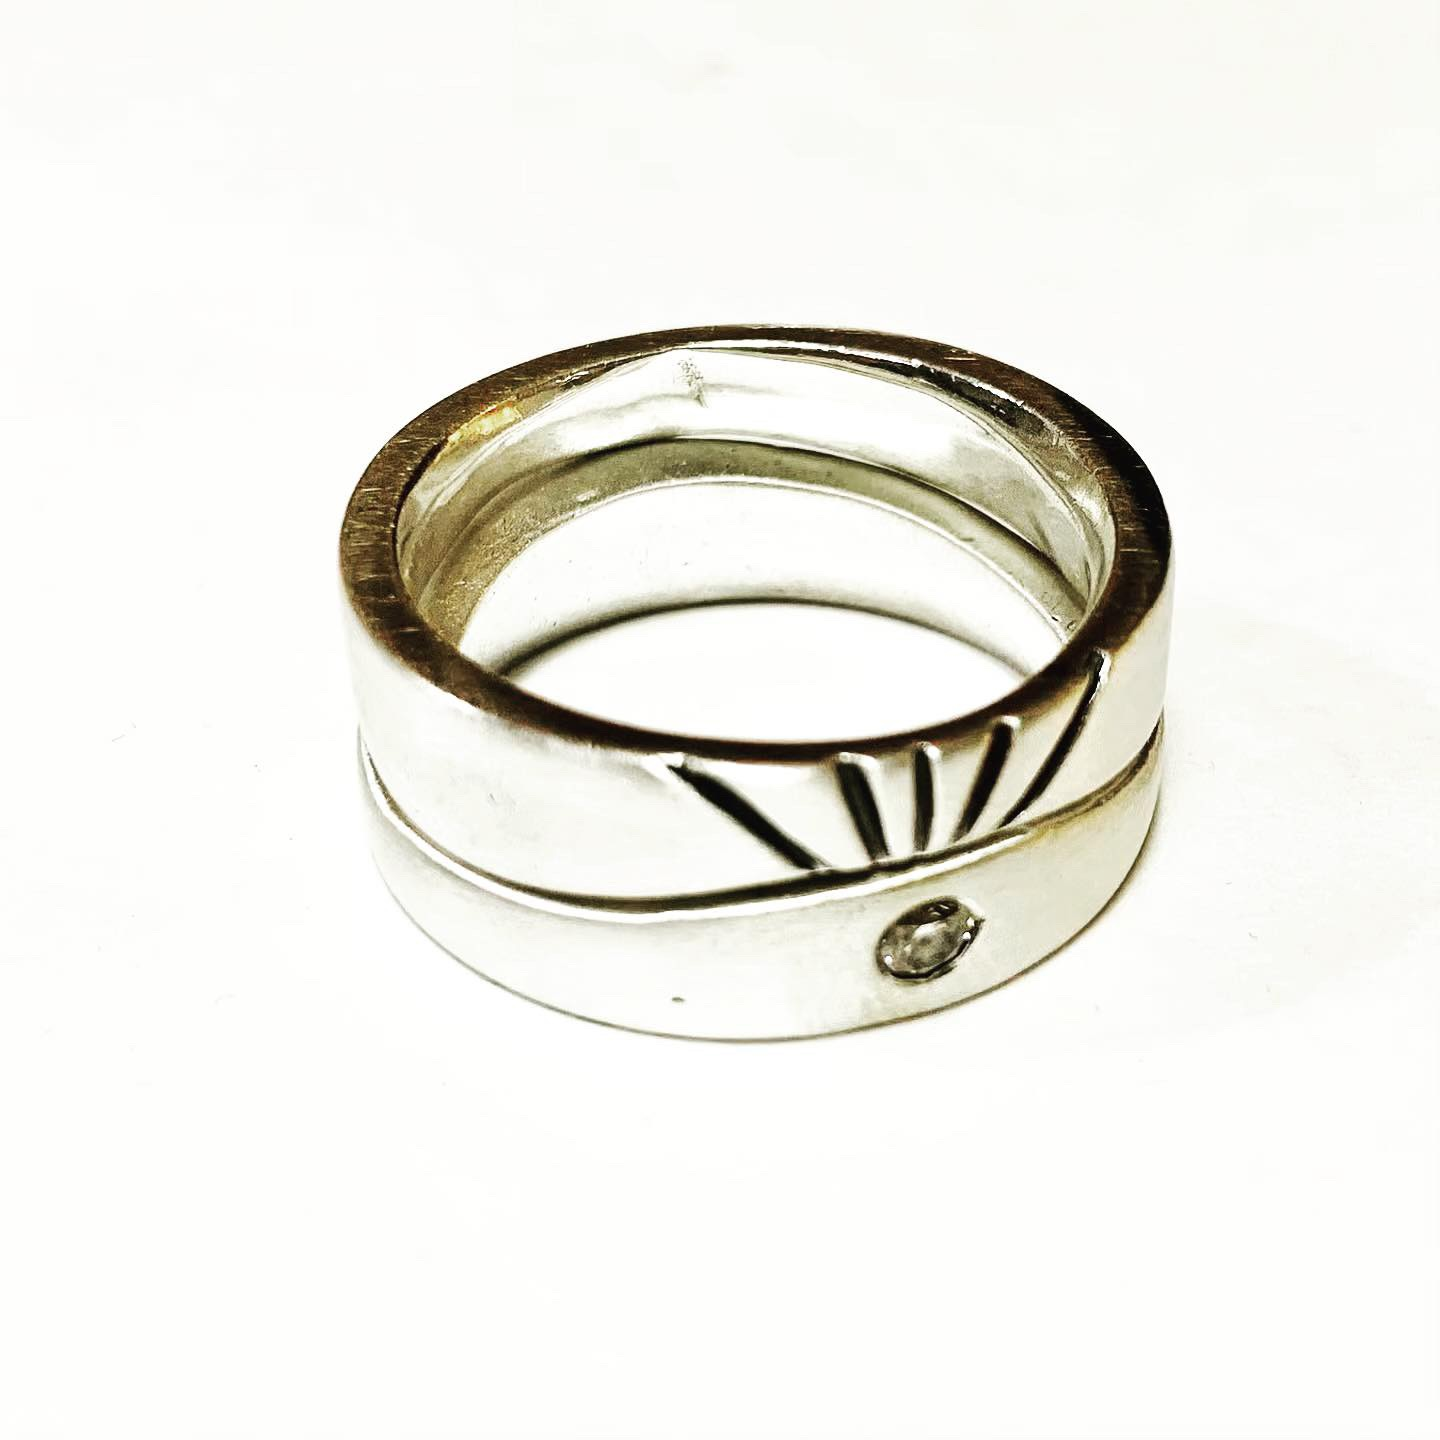 Colette Hazewood Contemporary Jewellery Silver Sunrise Rings